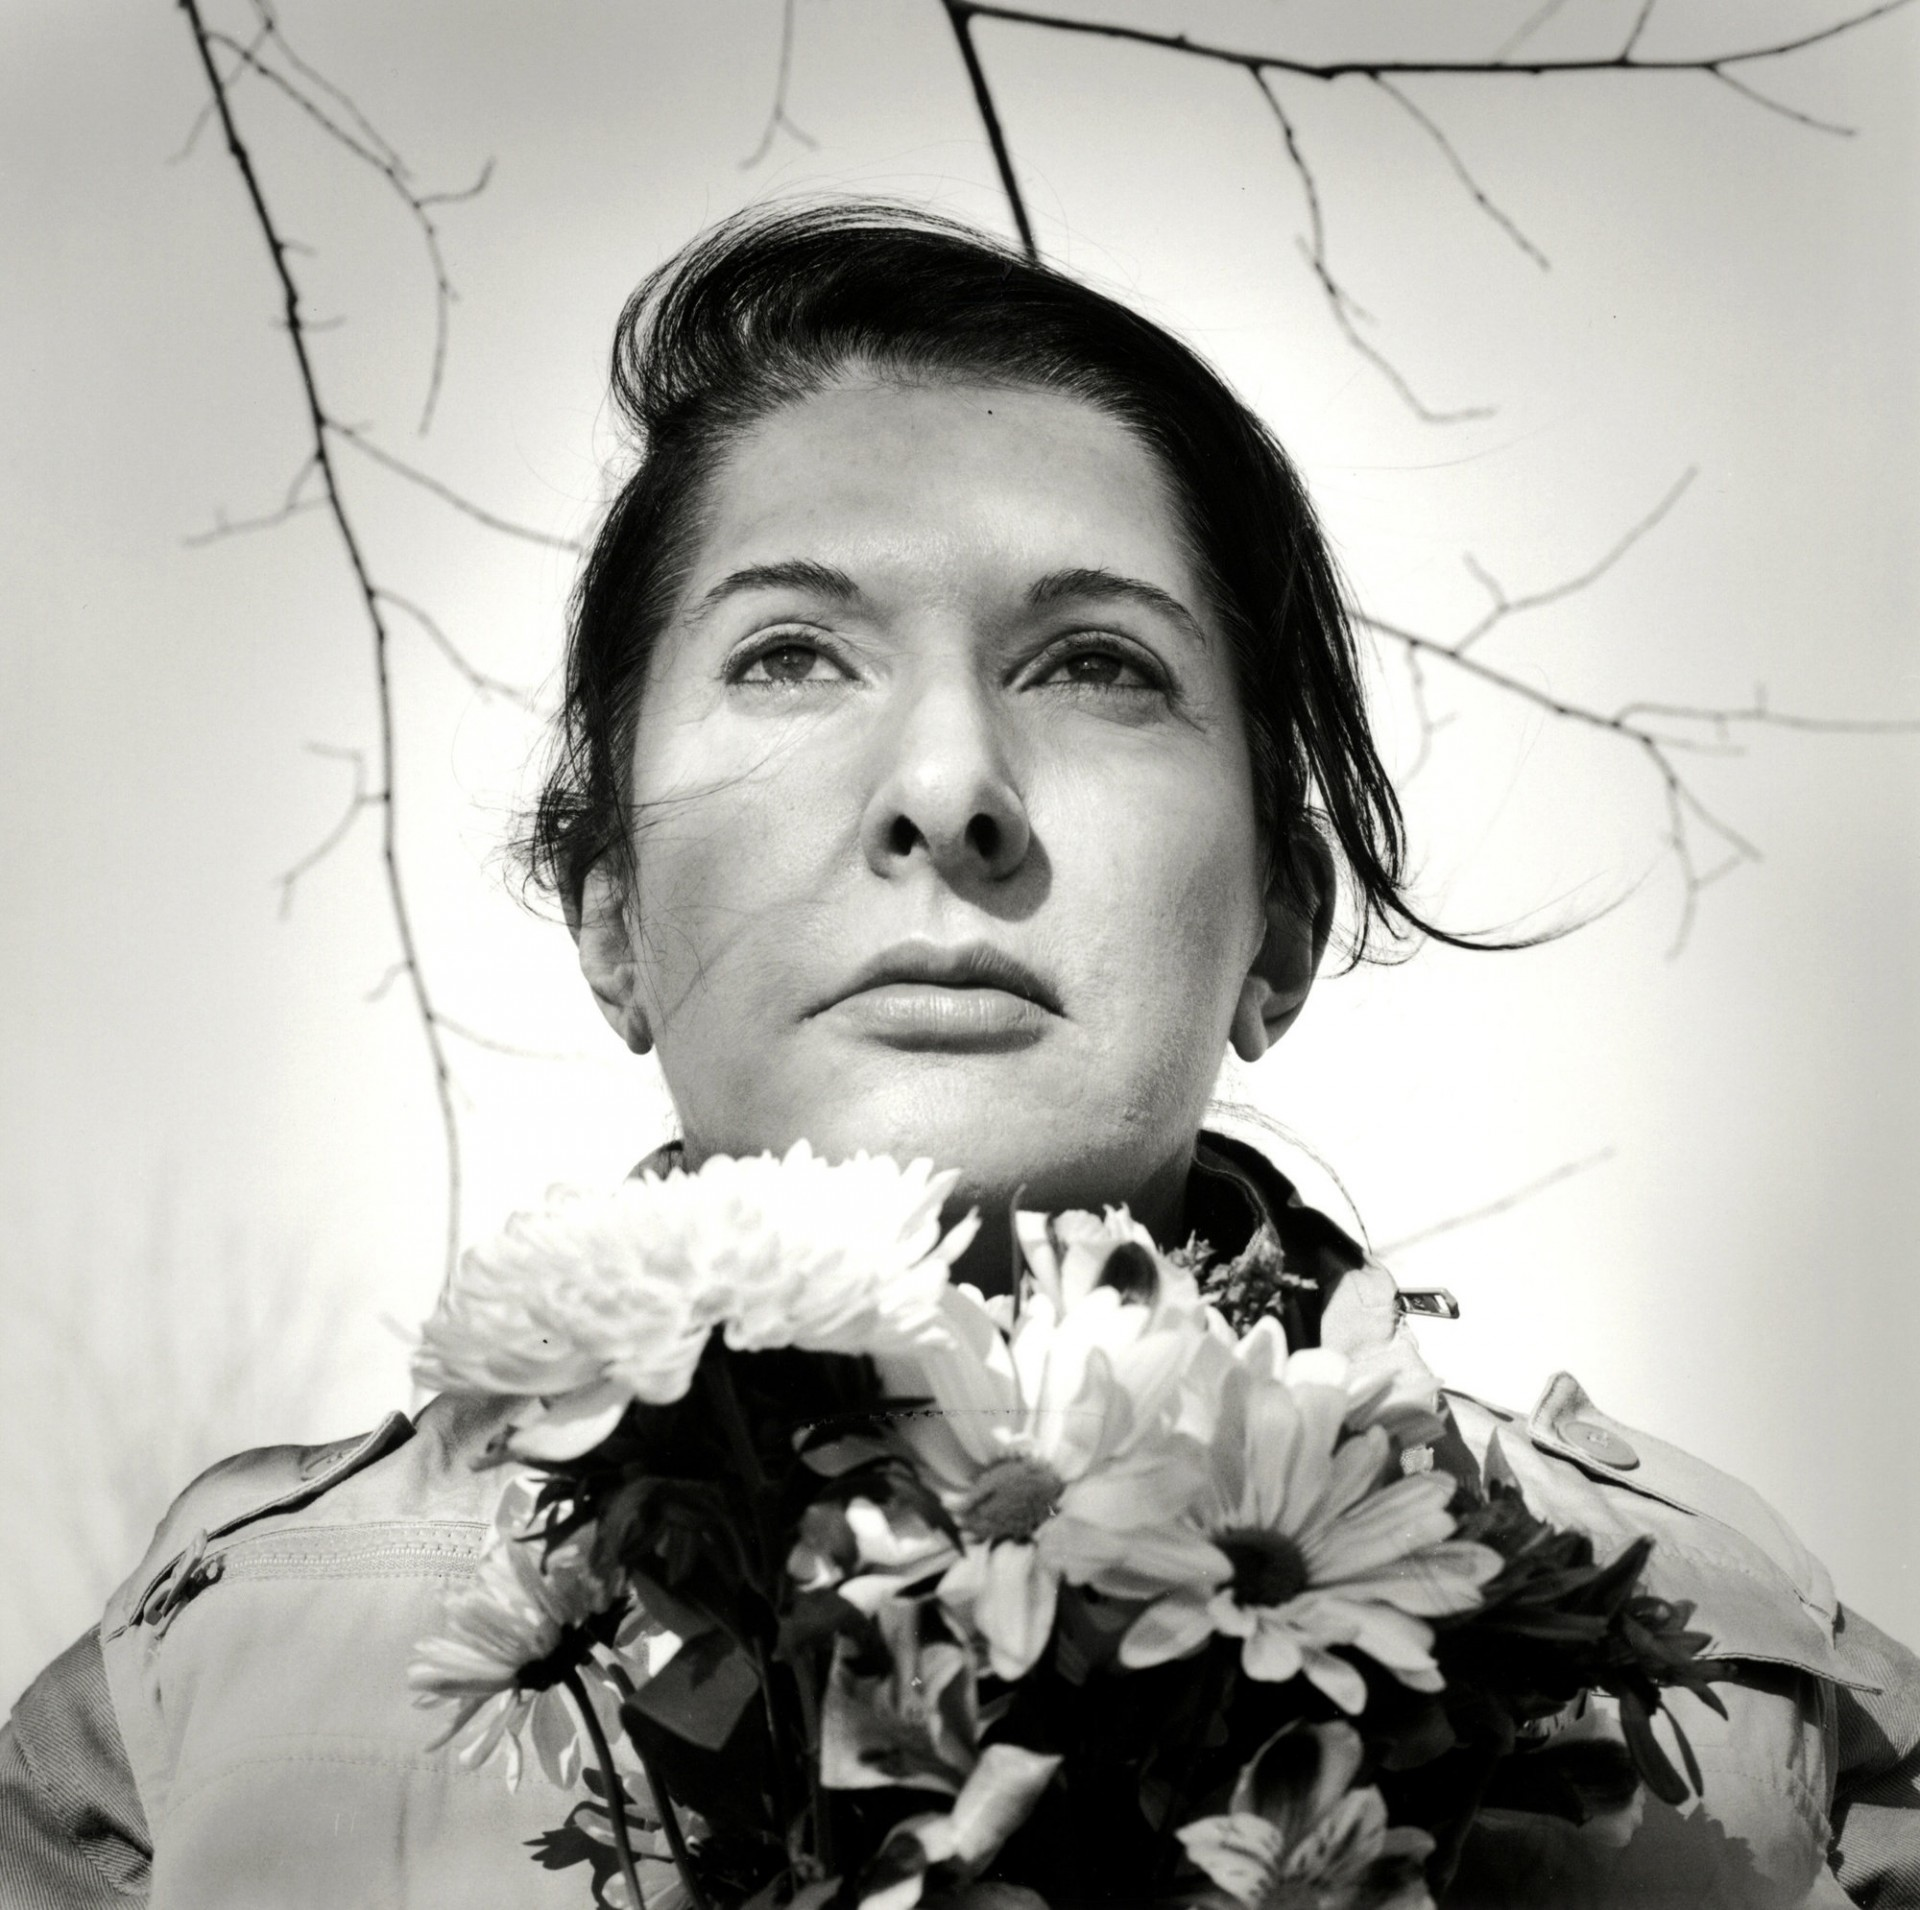 IB Visual Arts: Marina Abramovic's Advice for Artists